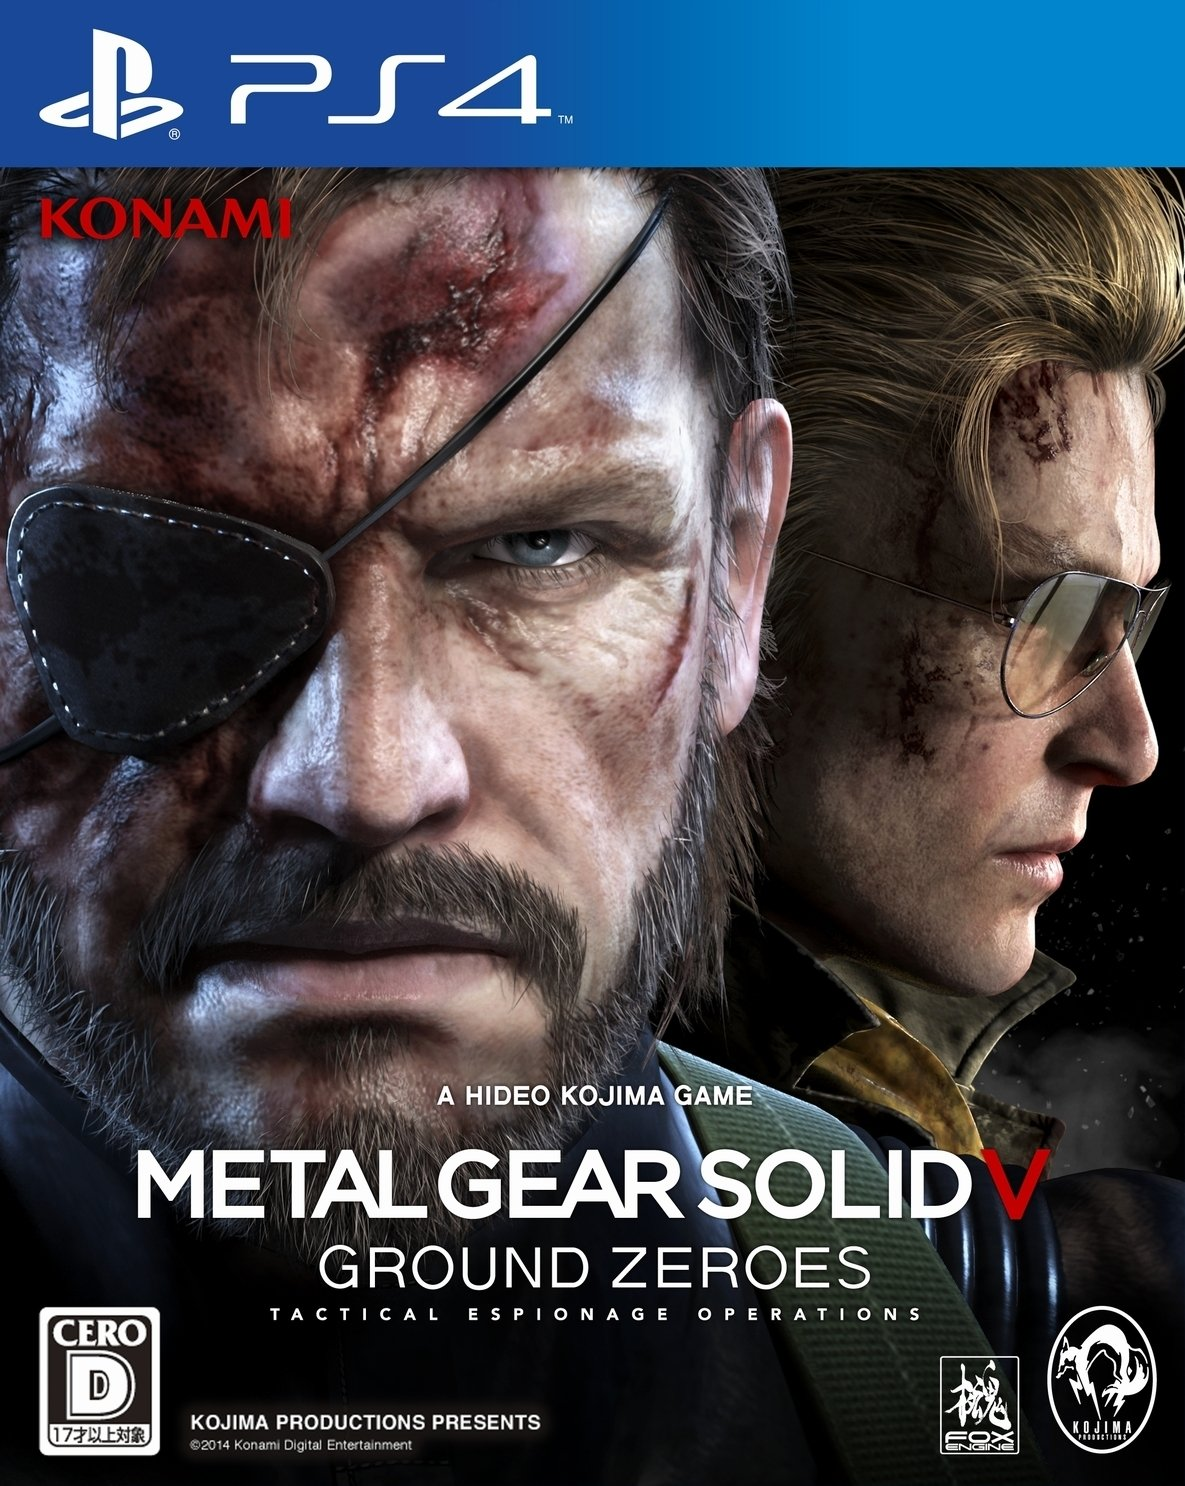 Metal Gear Solid V: Grounds Zeroes